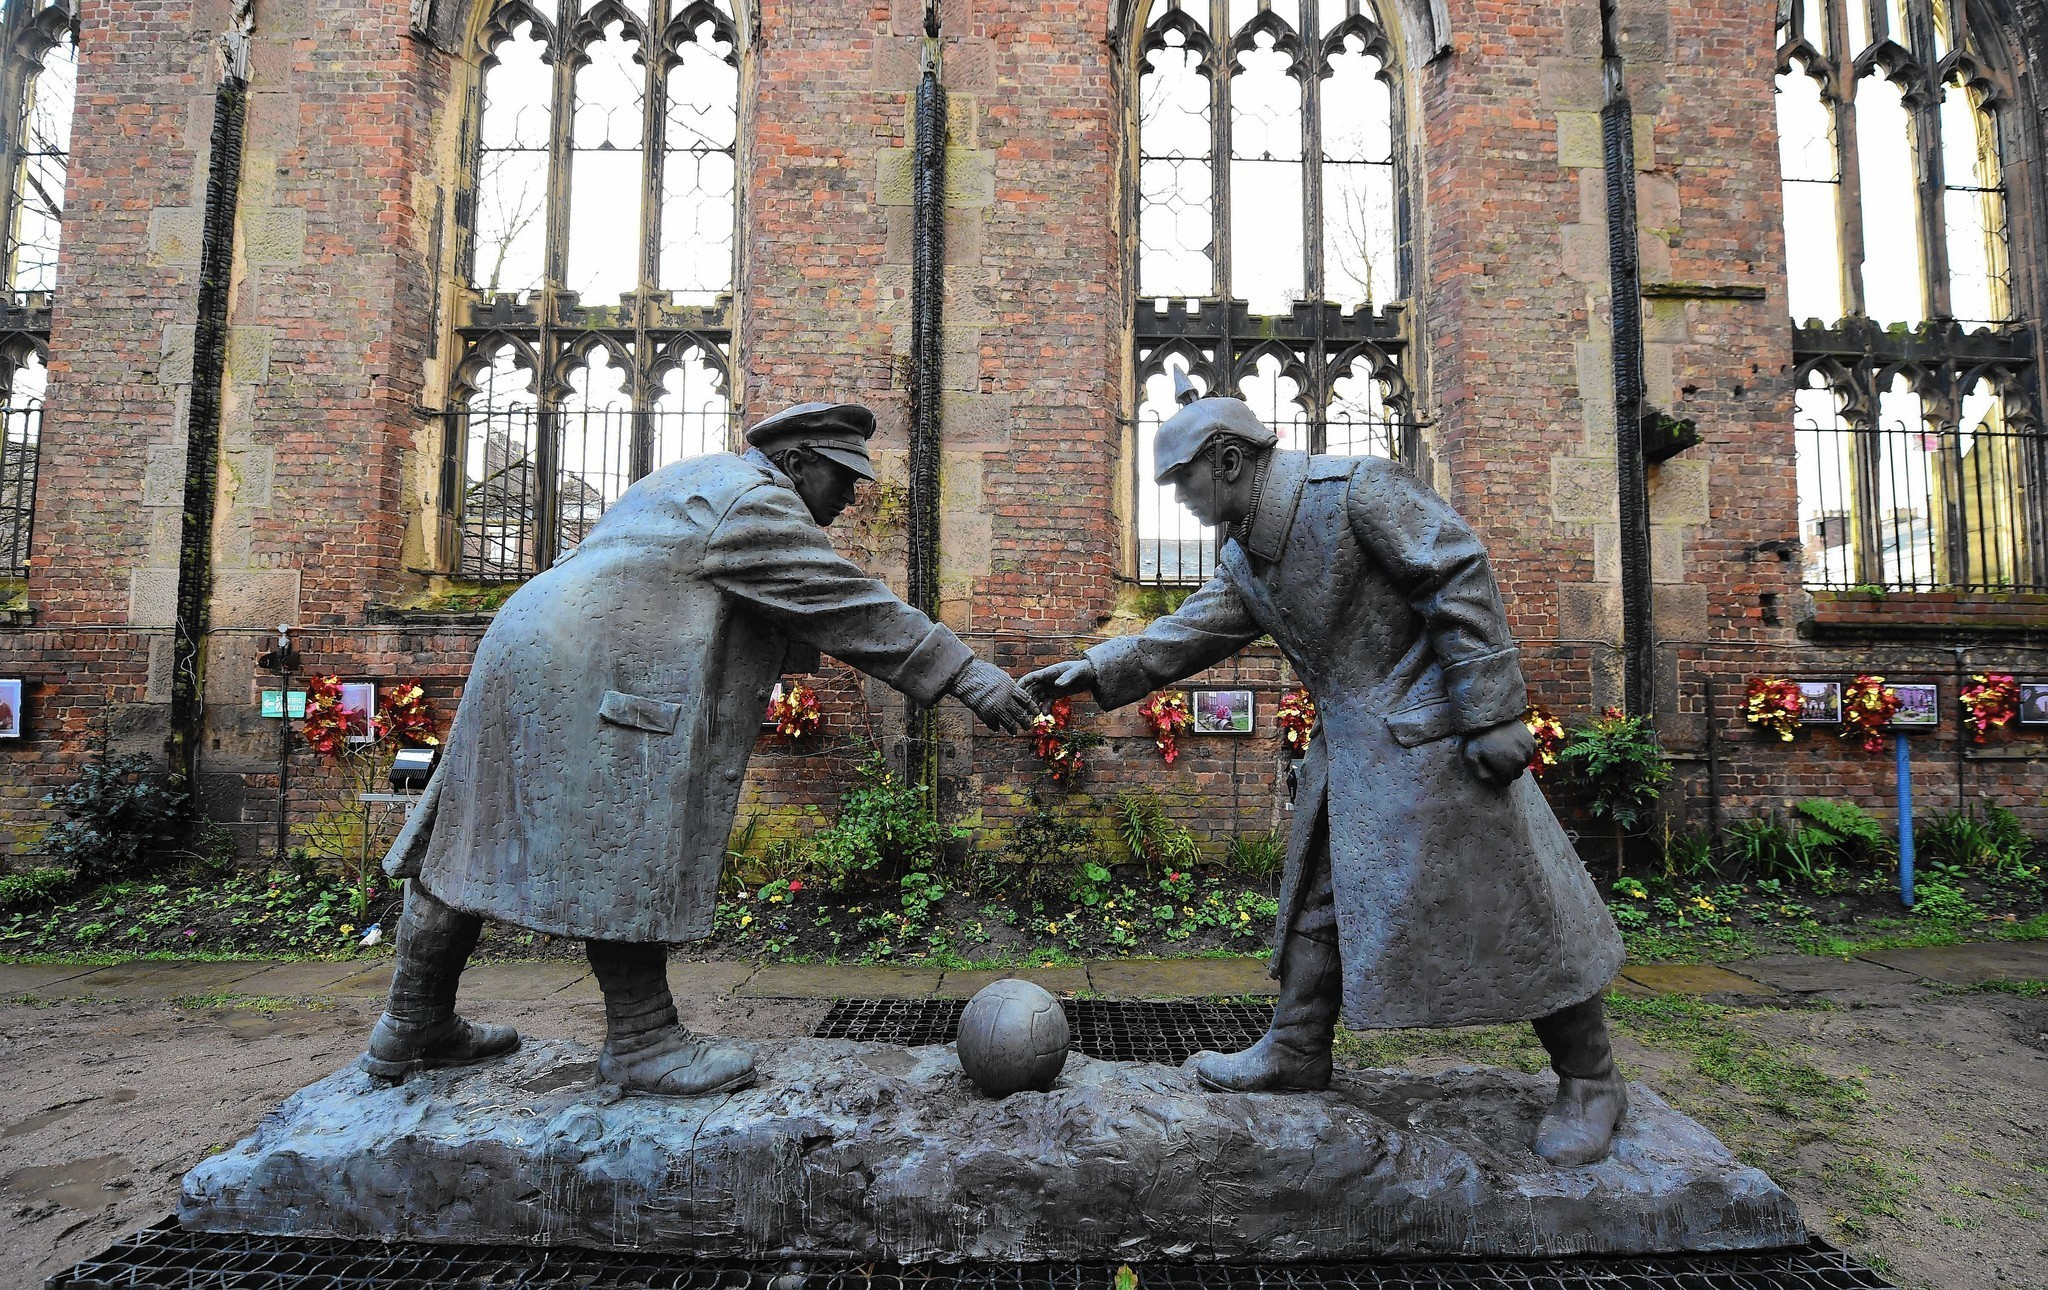 Wwi Christmas Truce.This Is The 100th Anniversary Of The Christmas Truce In Wwi